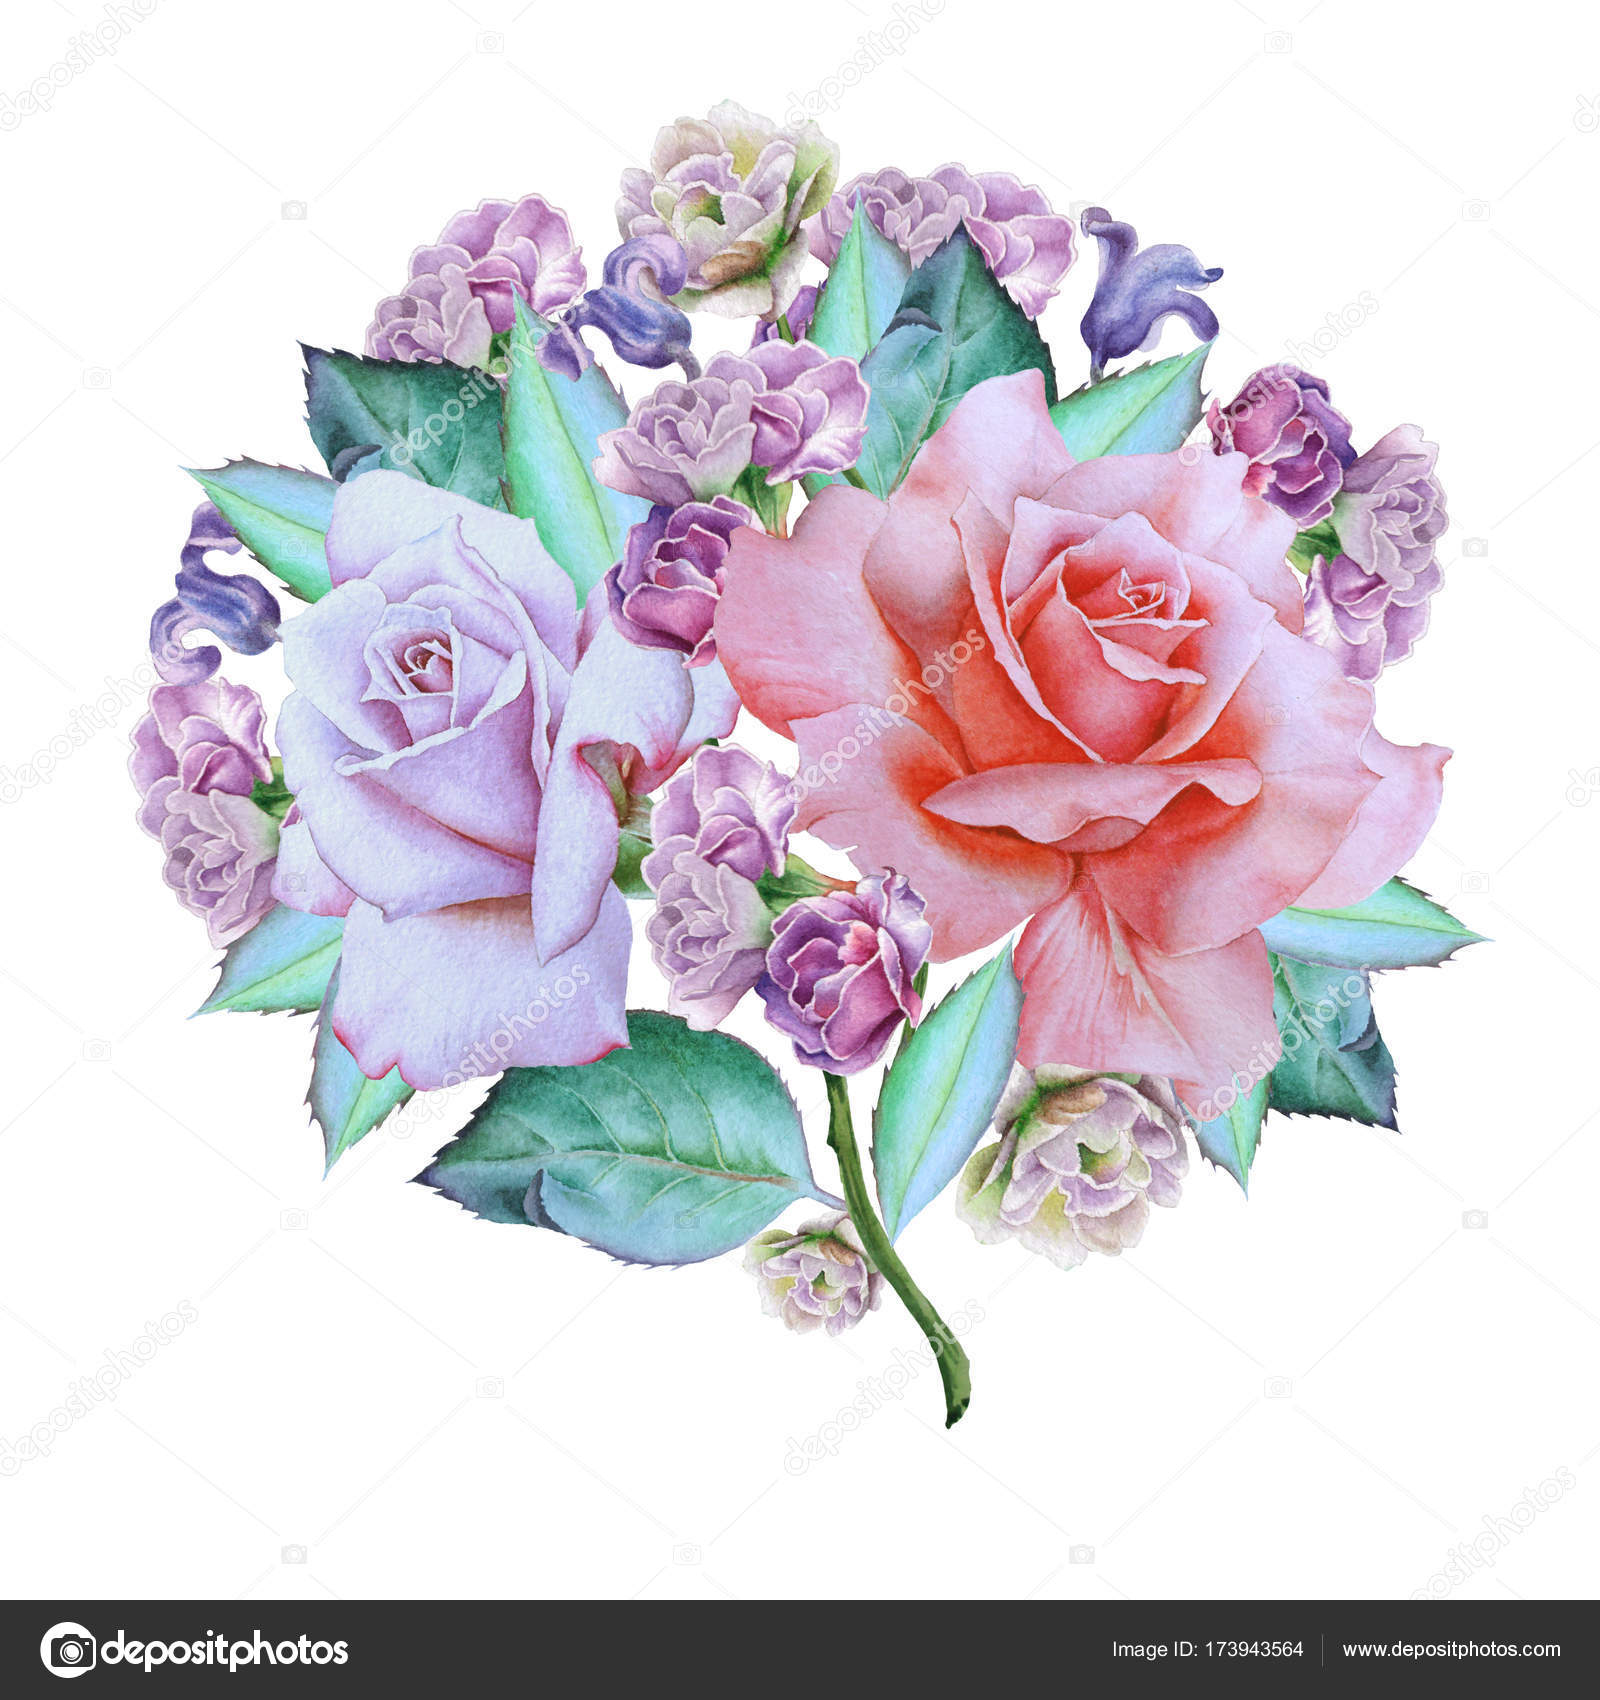 Watercolor bouquet with flowers rose hyacinth illustration watercolor bouquet with flowers rose hyacinth illustration hand drawn photo by rednex izmirmasajfo